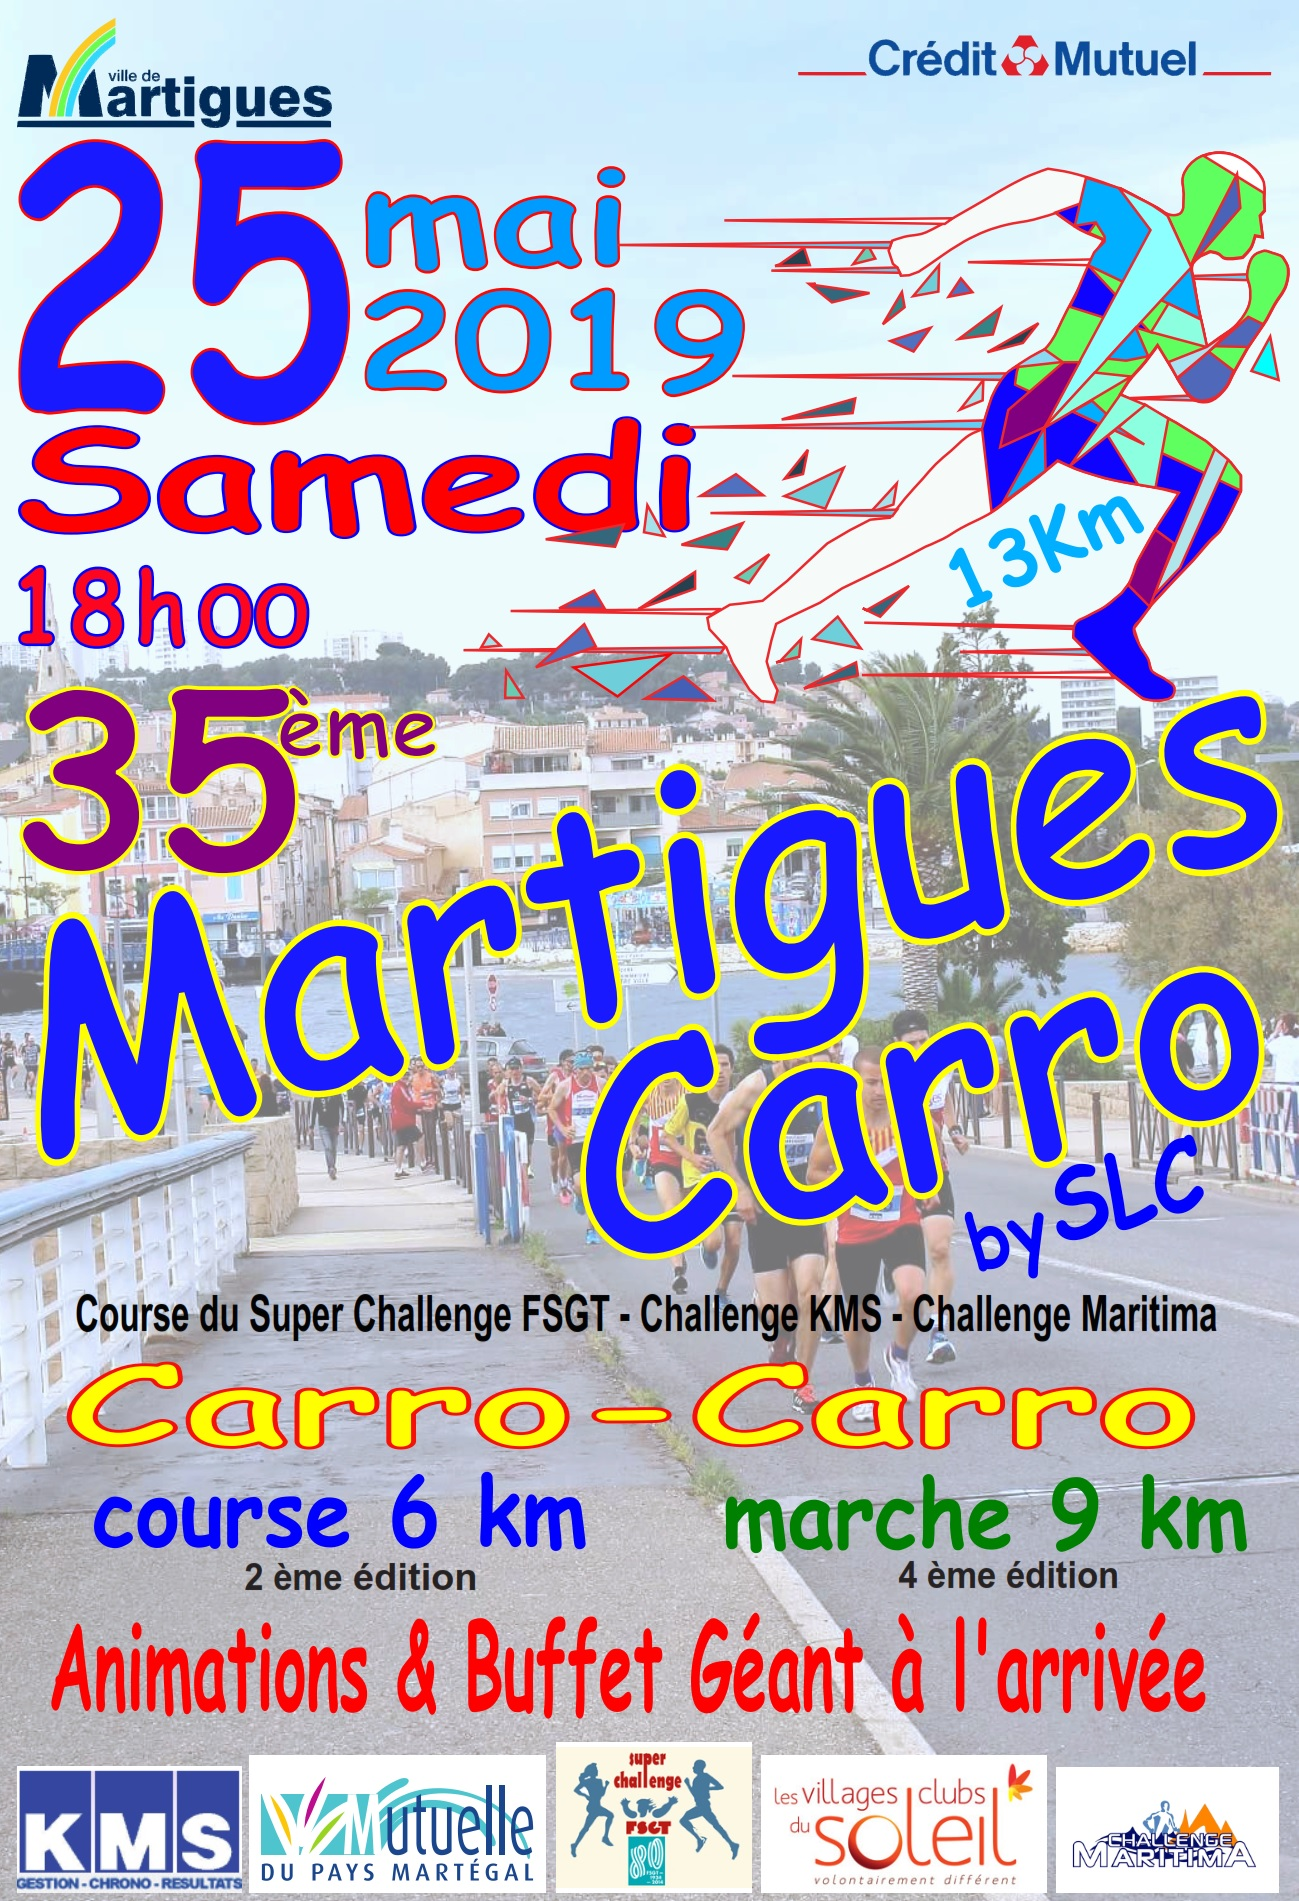 Martigues - Carro : Course 13 km